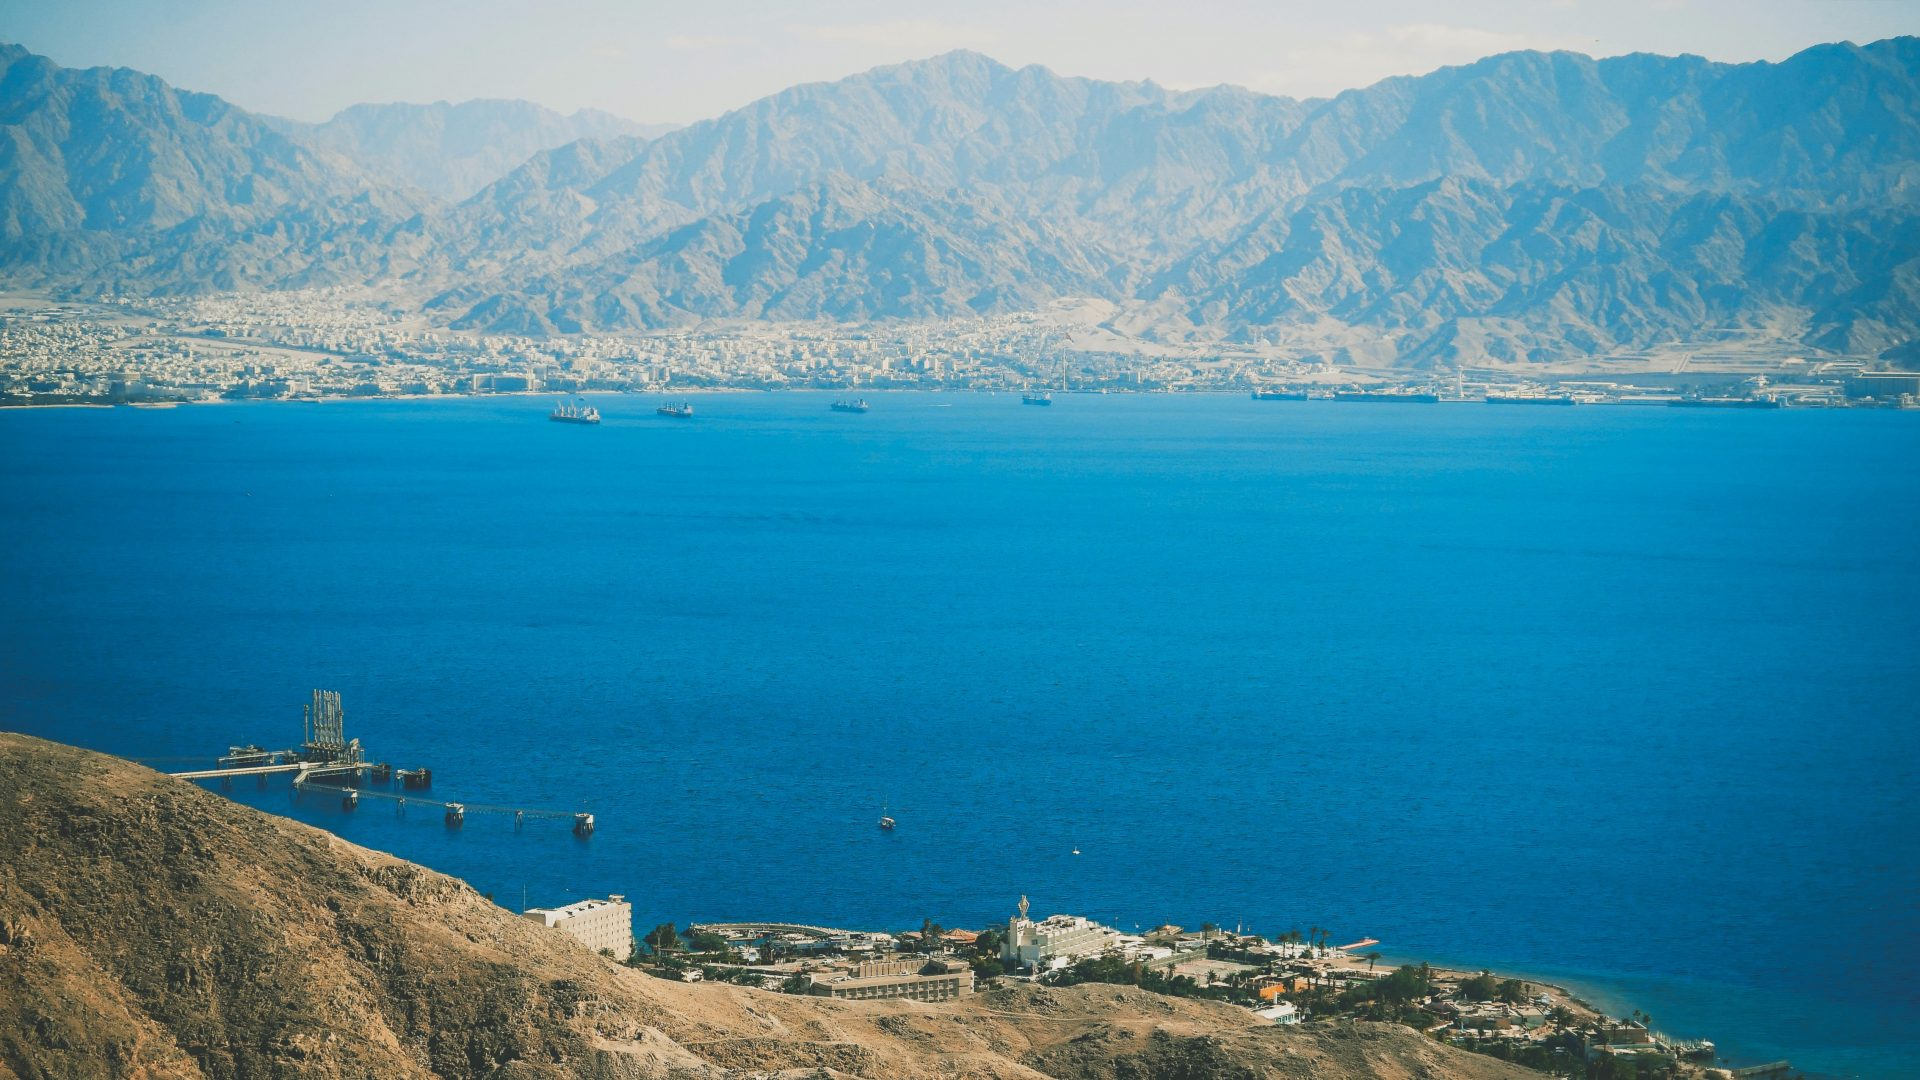 How to get from Eilat to Jerusalem?